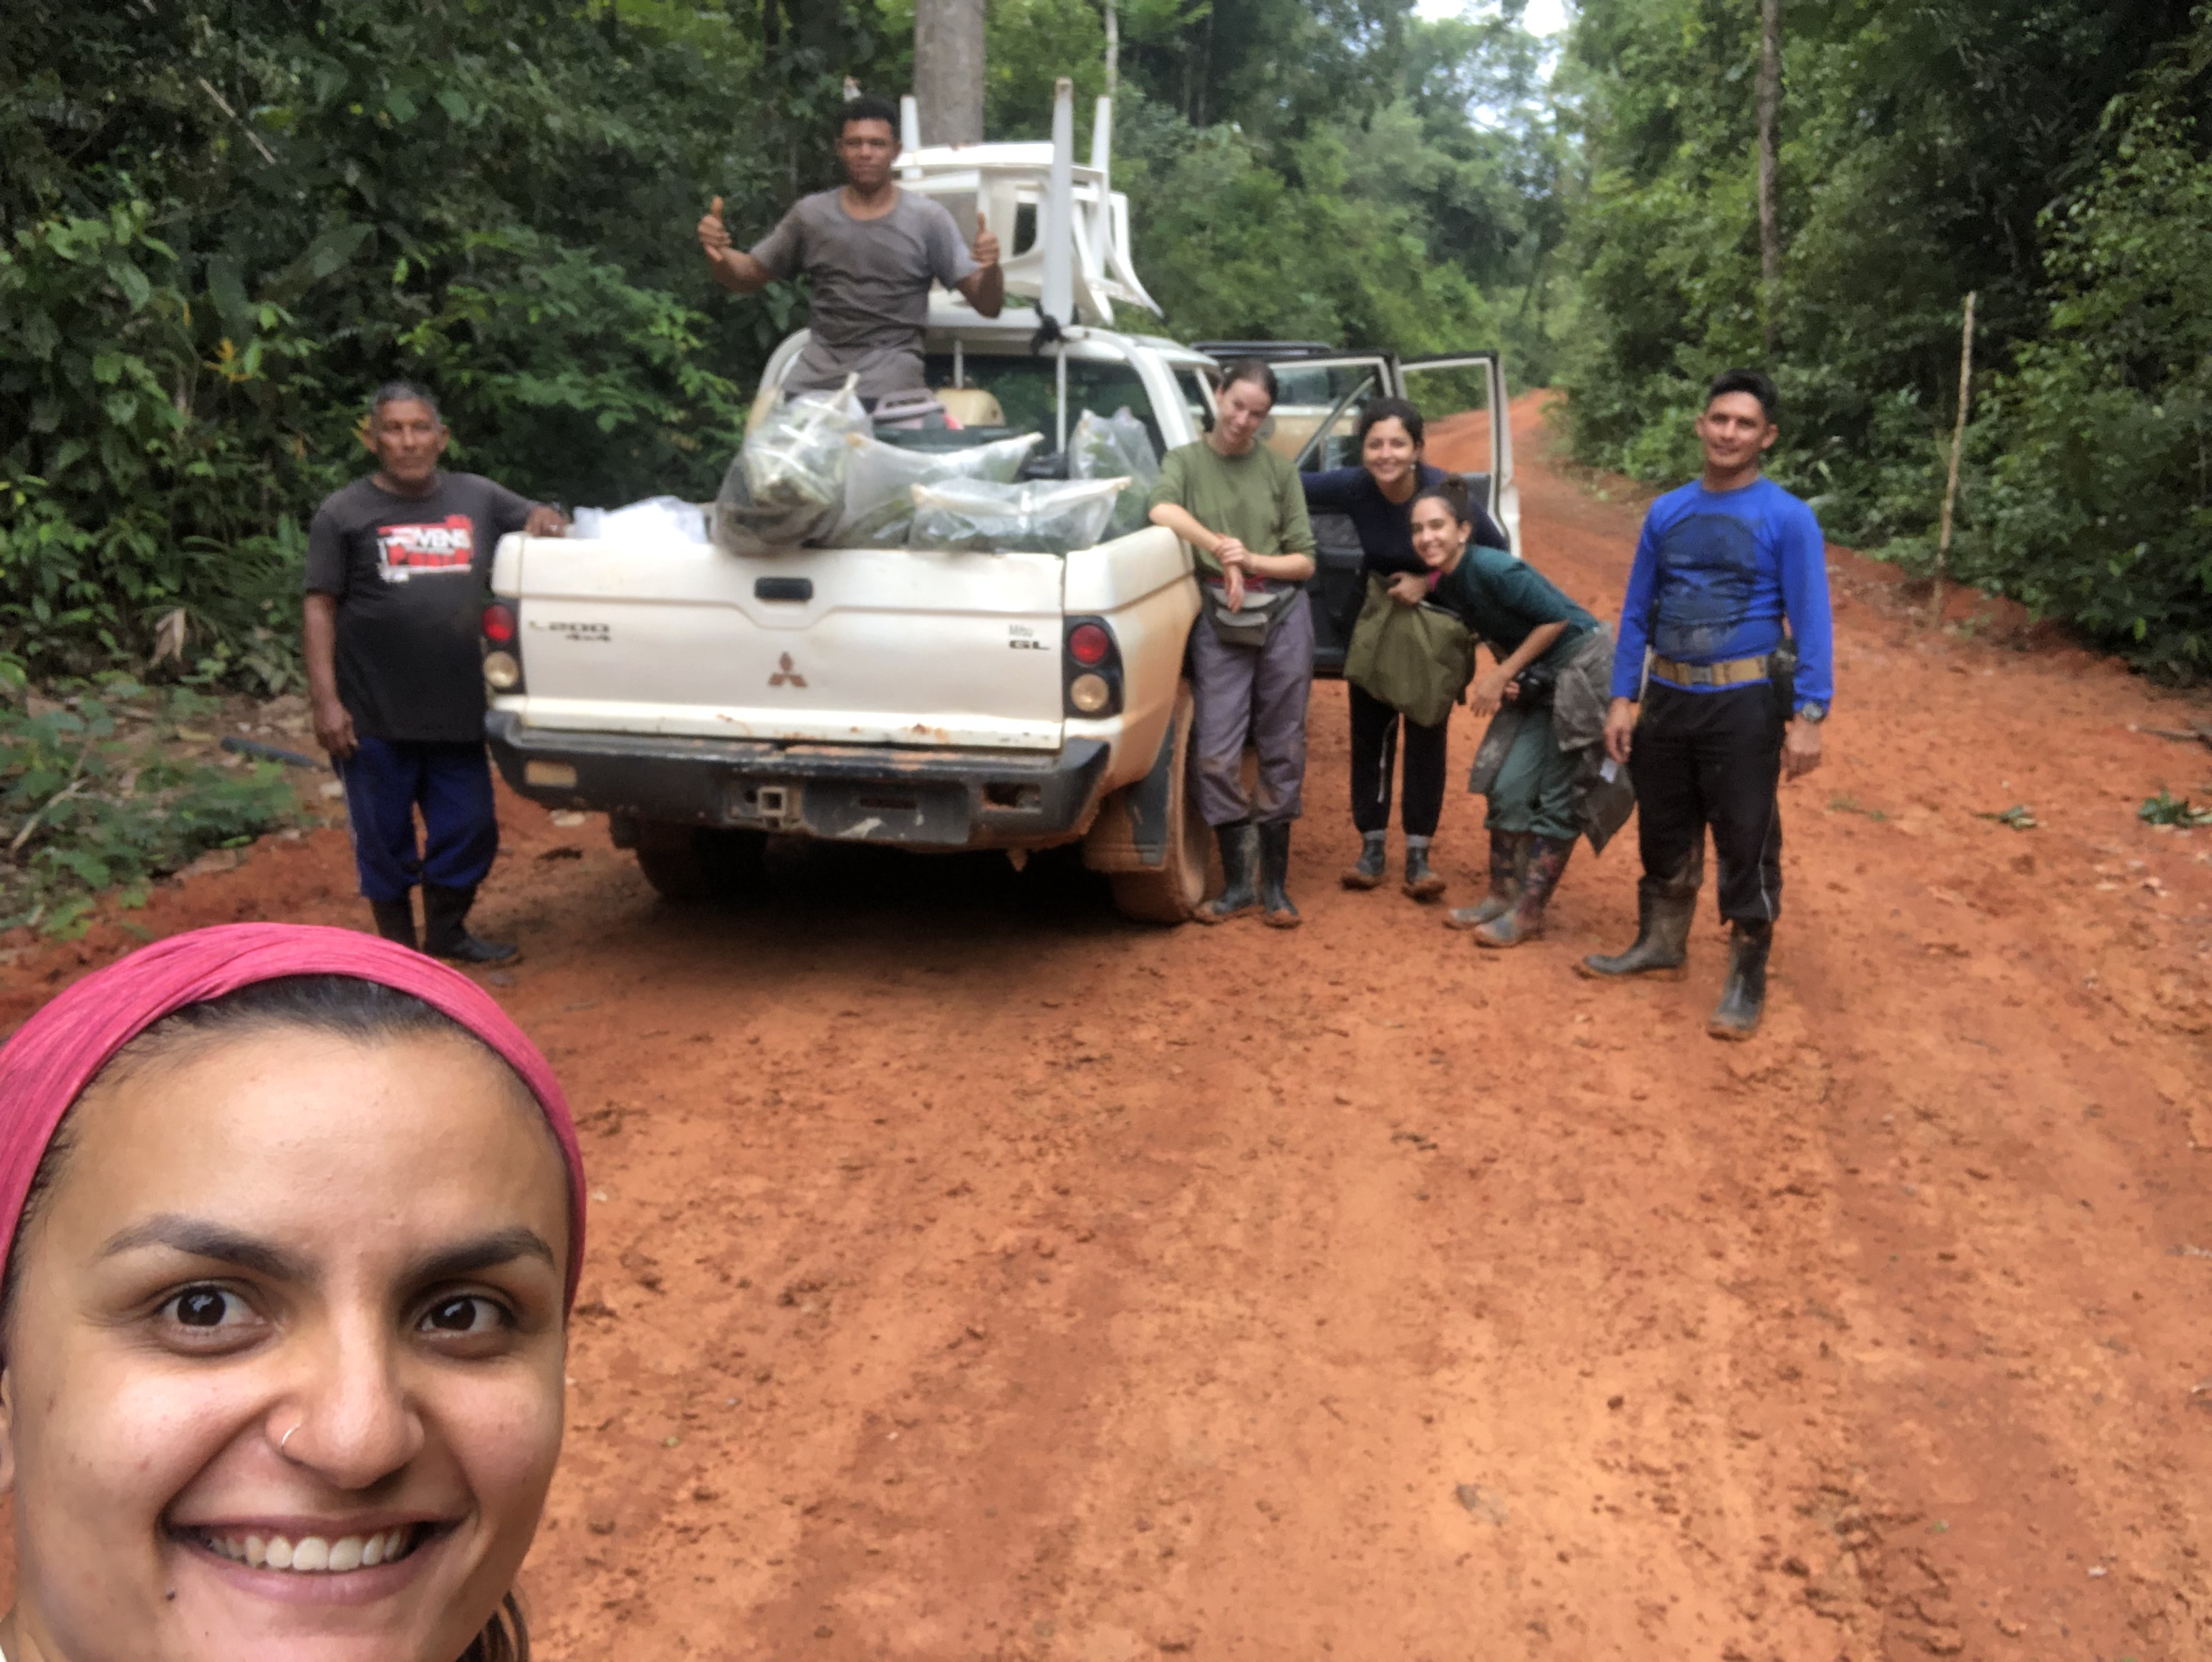 Elaine and her team gather at the truck to return back to the camp after a successful day of measuring.